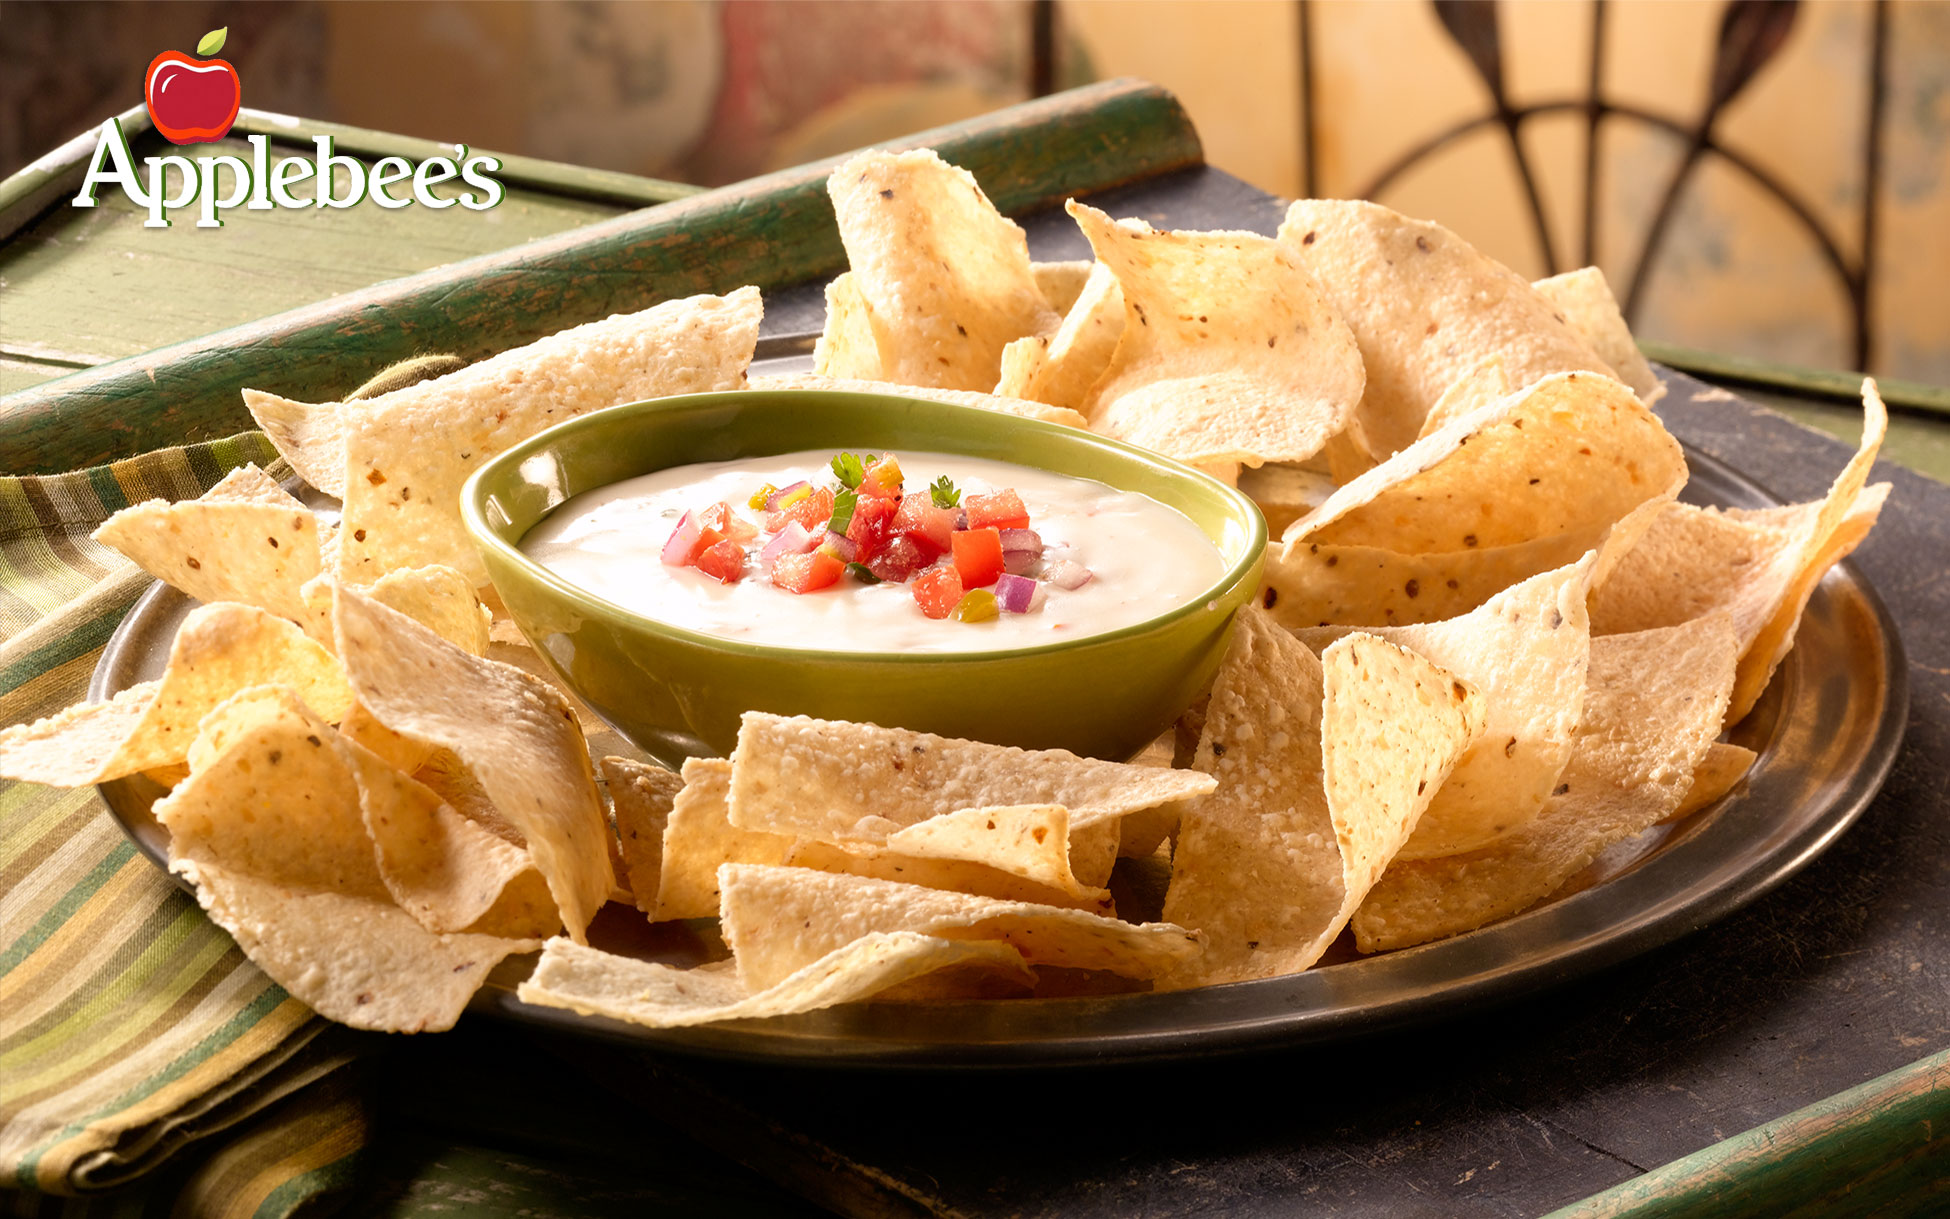 Applebees-Spicy-Queso-Blanco-with-New-Logo-2